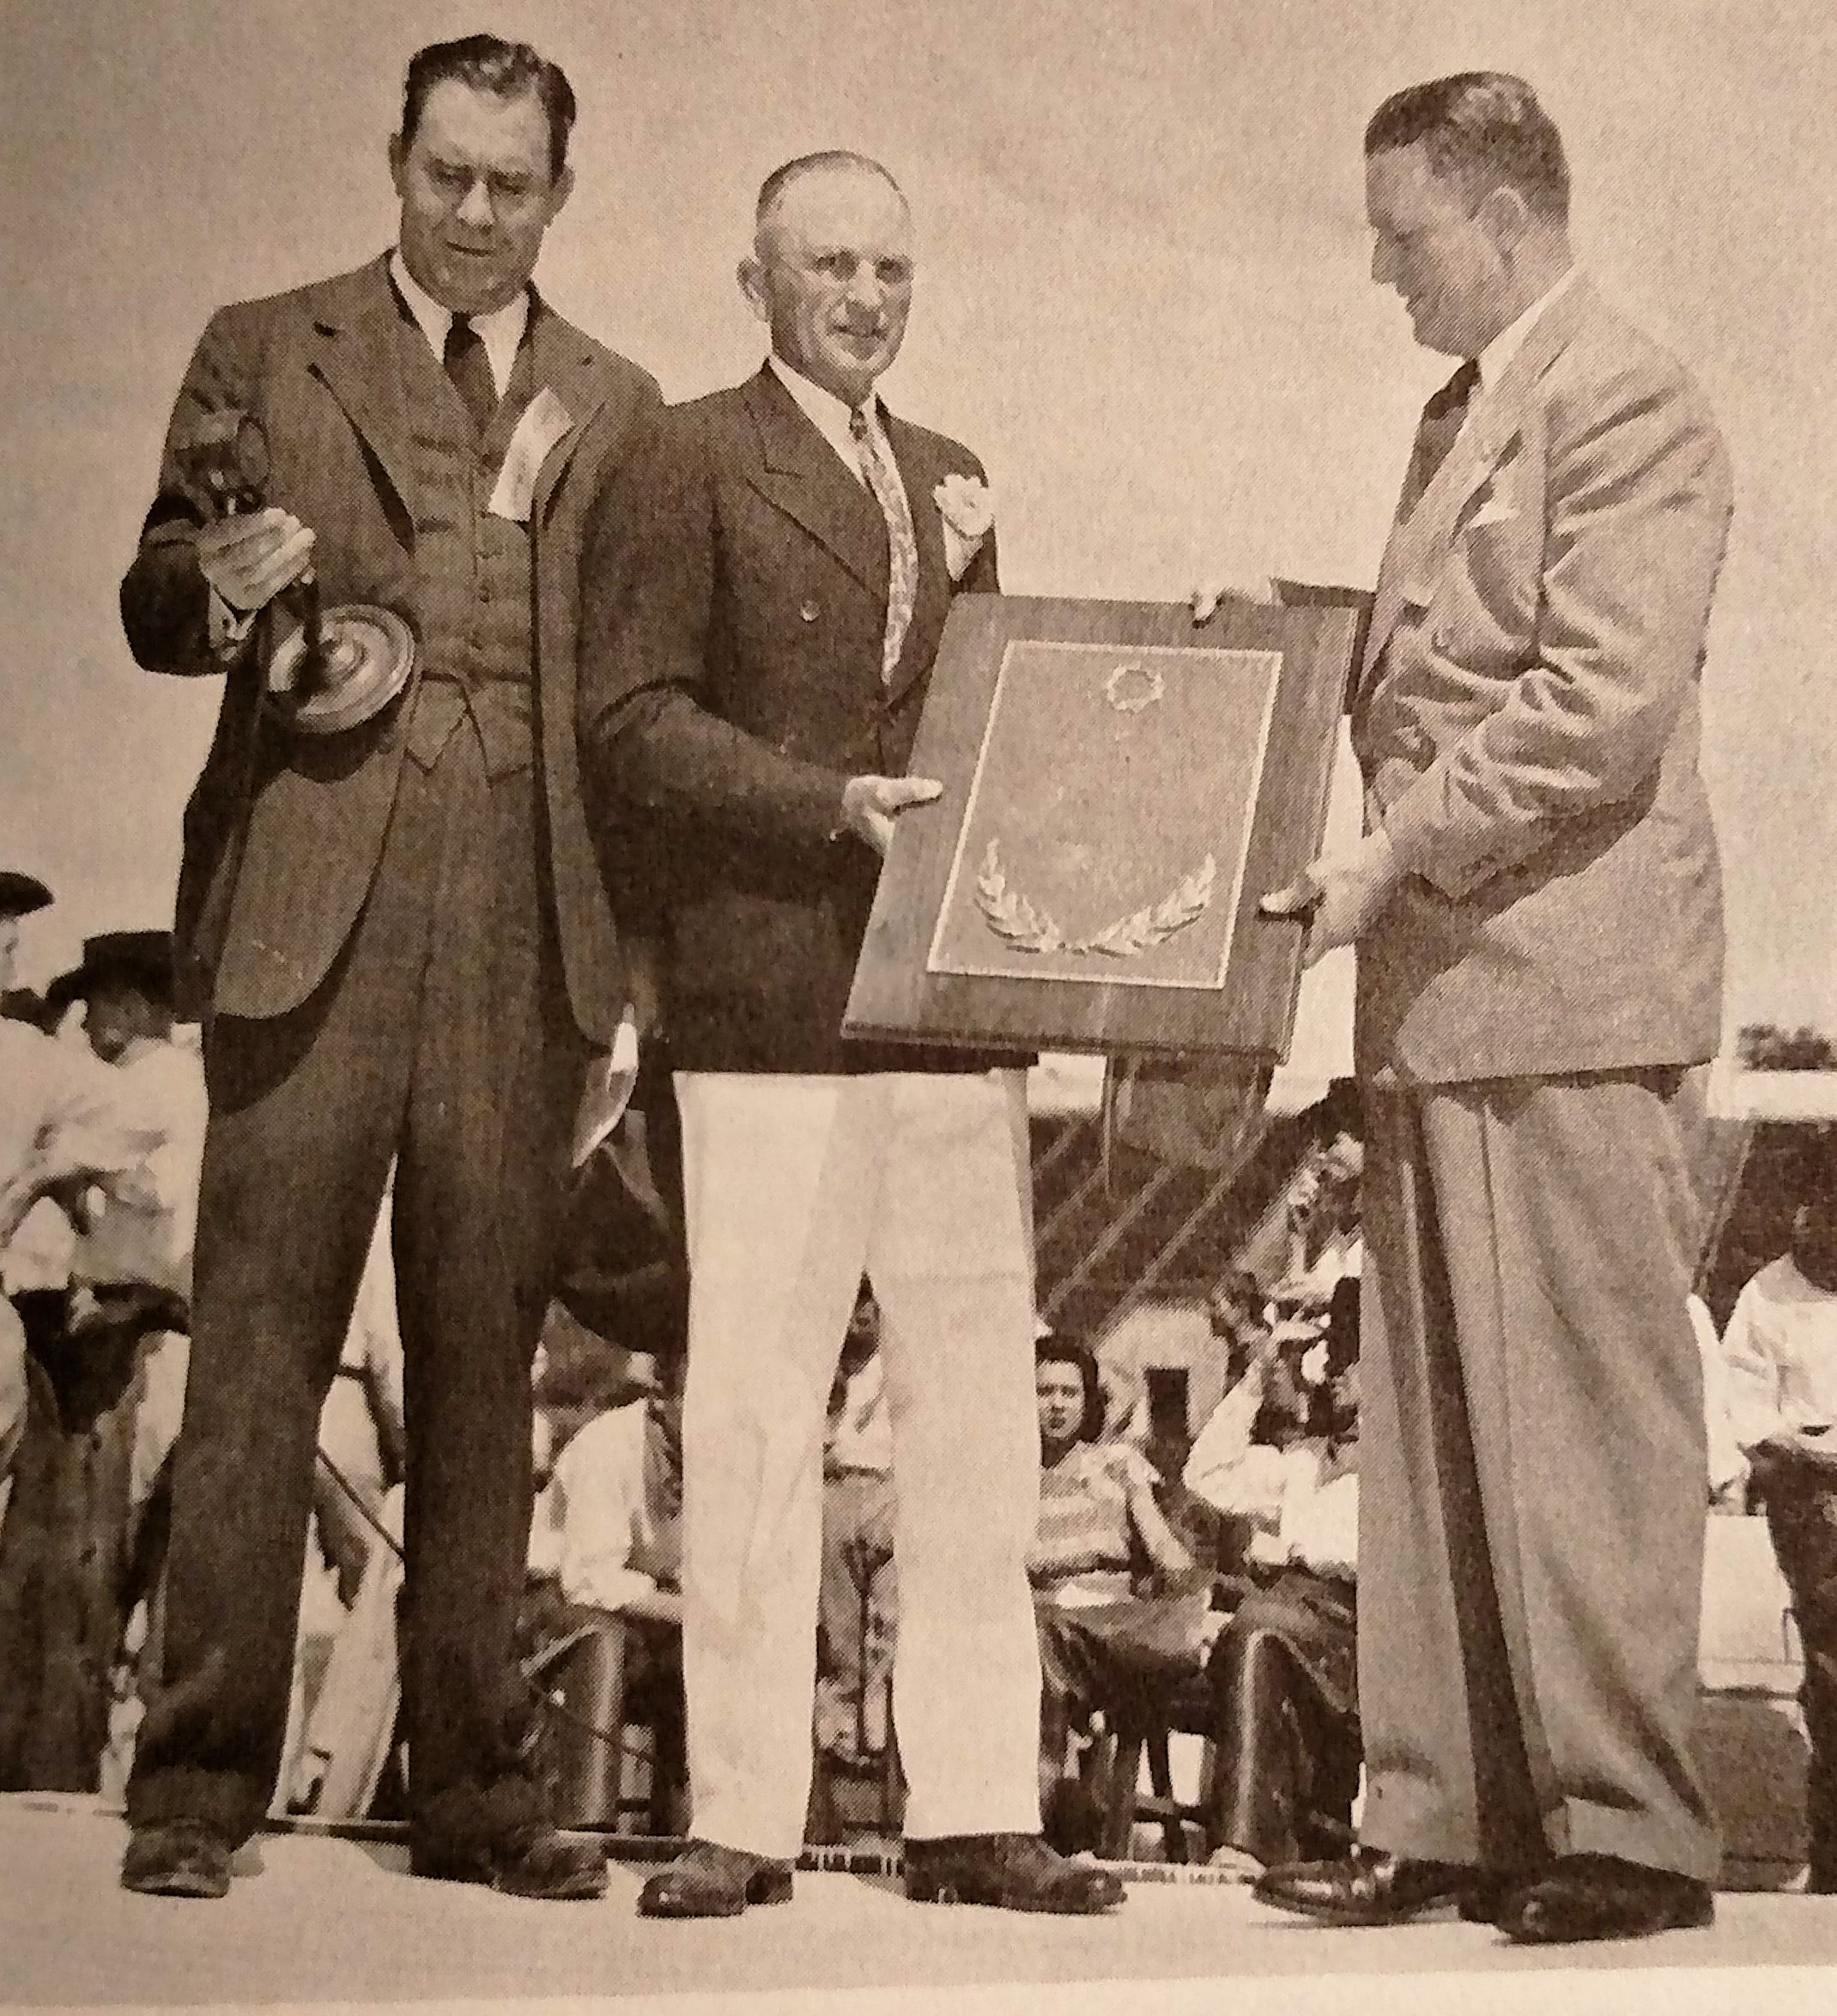 Clyde receiving an award from C.B, Smith and Tiny Gooch -